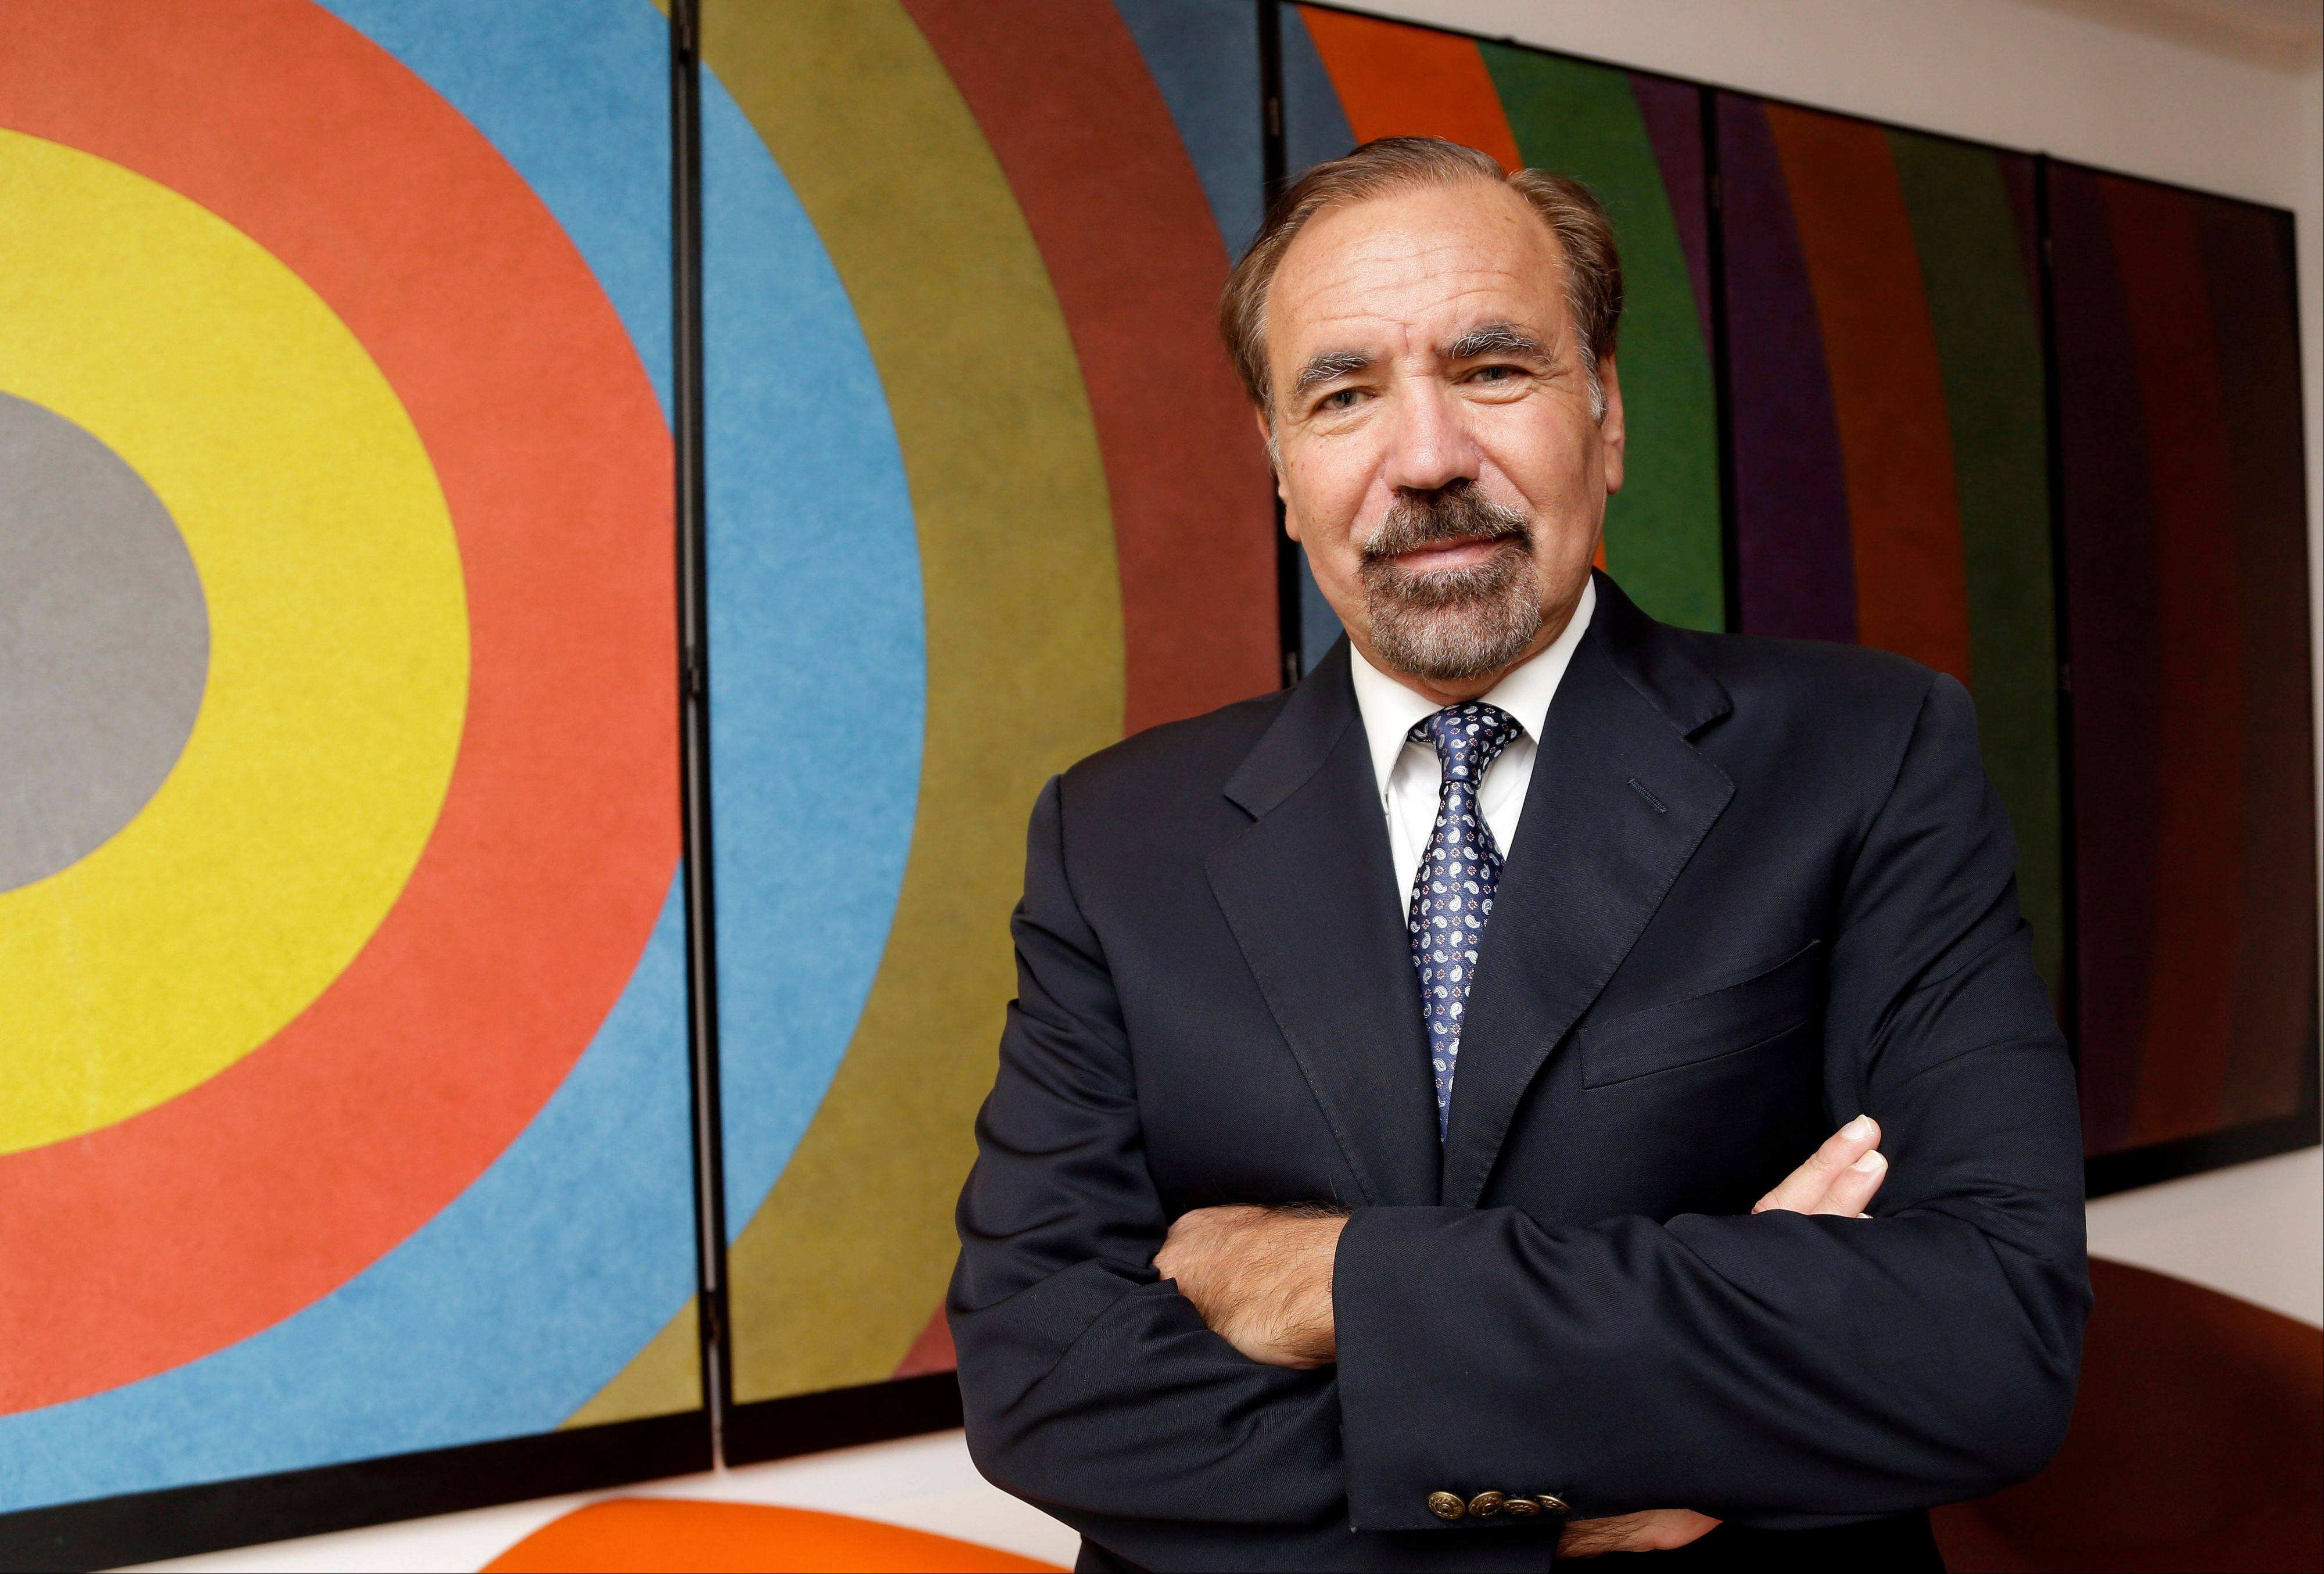 "Developer and art collector Jorge Perez stands in front of a piece by artist Sol LeWitt and is titled ""Folding Screen 3 C-Arcs from the Midpoint of the Left Side."" Perez, a major force behind Miami's urban development, donated a combined $40 million in cash and art, earning naming rights to the newly opened Perez Art Museum Miami."